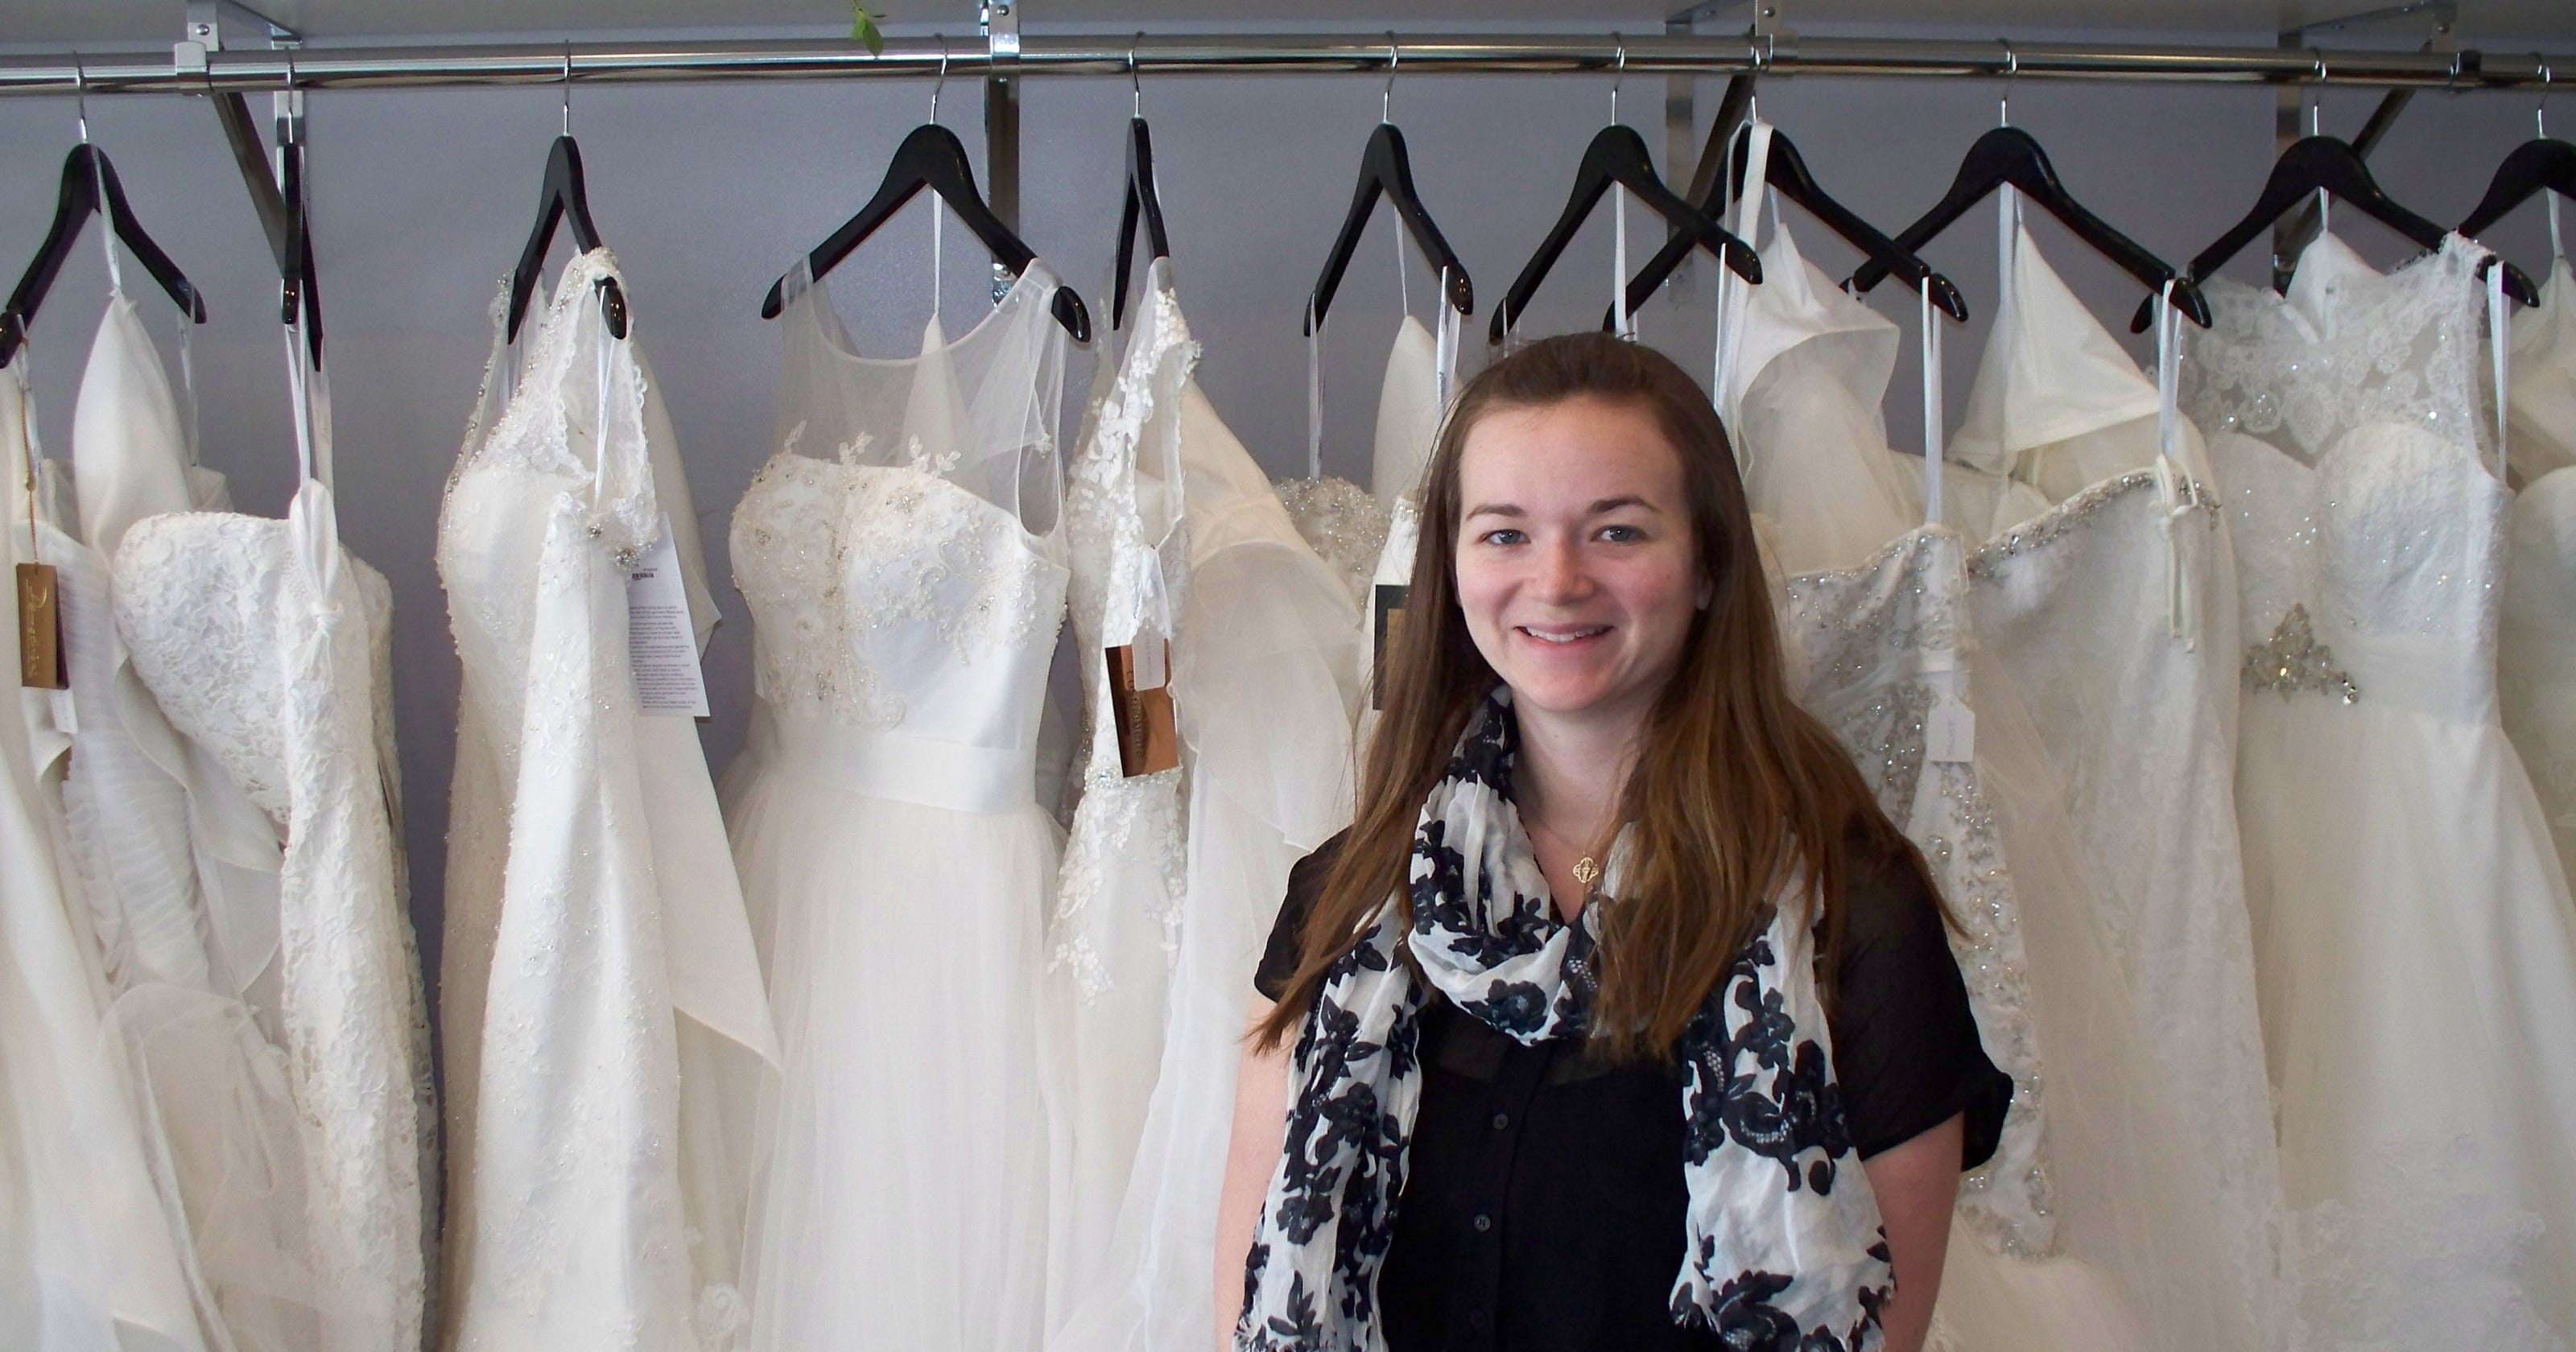 Brides By Jessa Offers Personalized Bridal Service